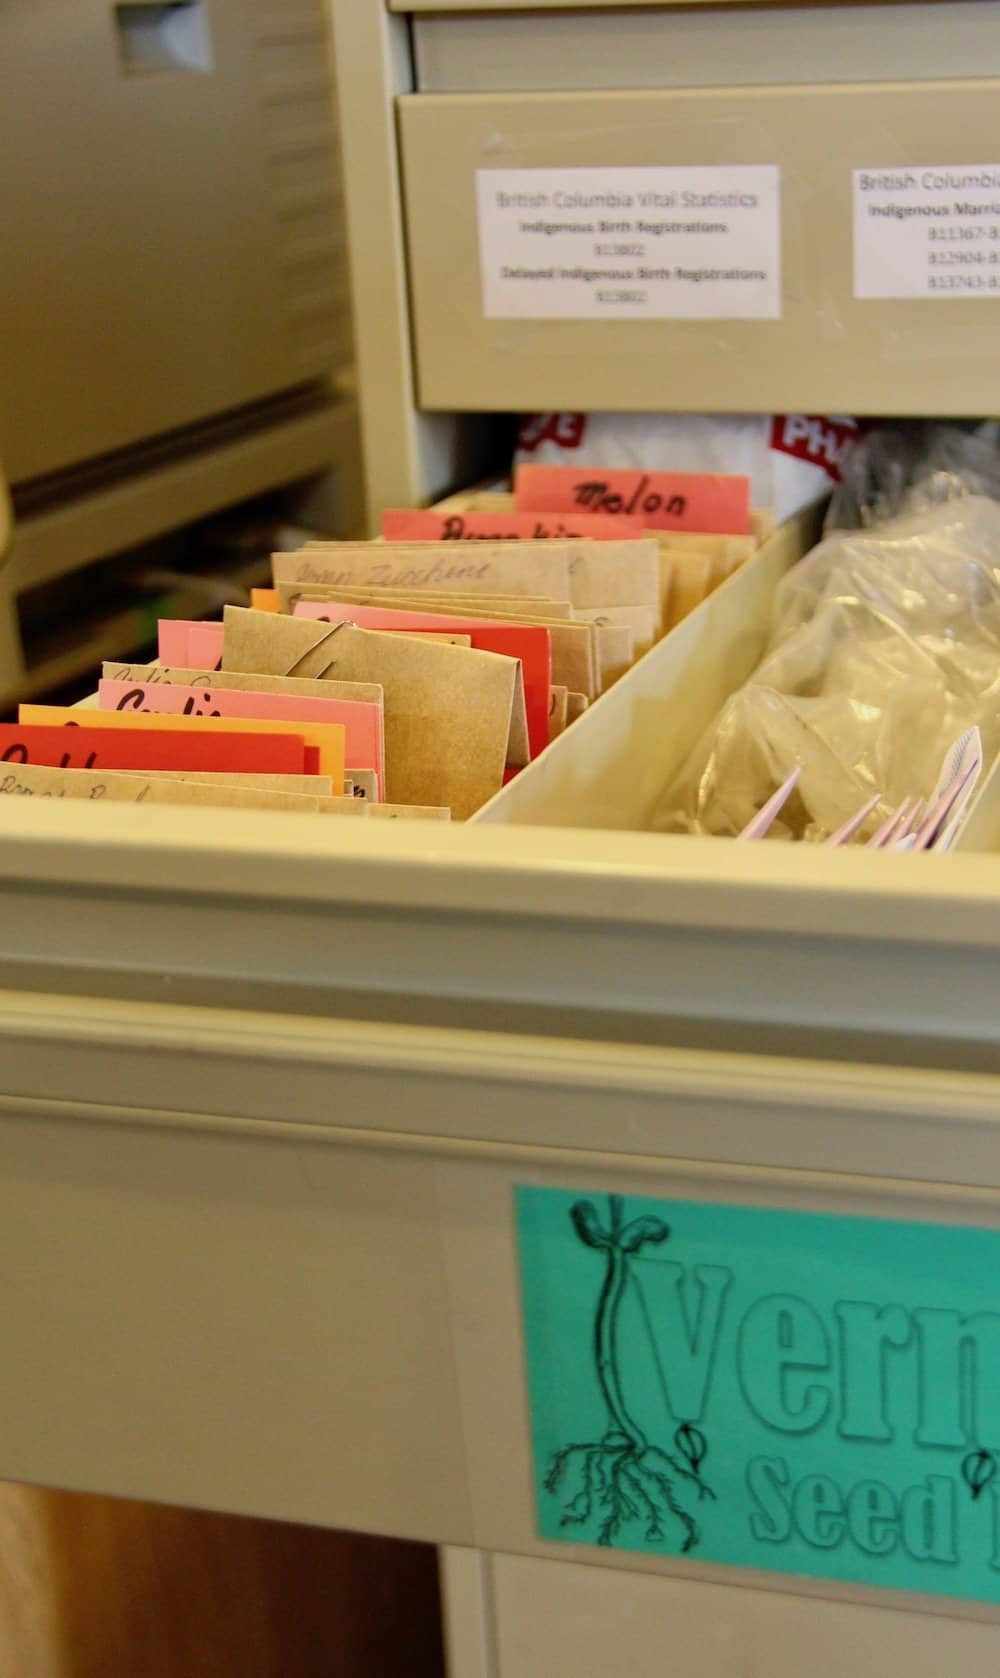 open seed library drawer showing packets and labels from the free seed collection